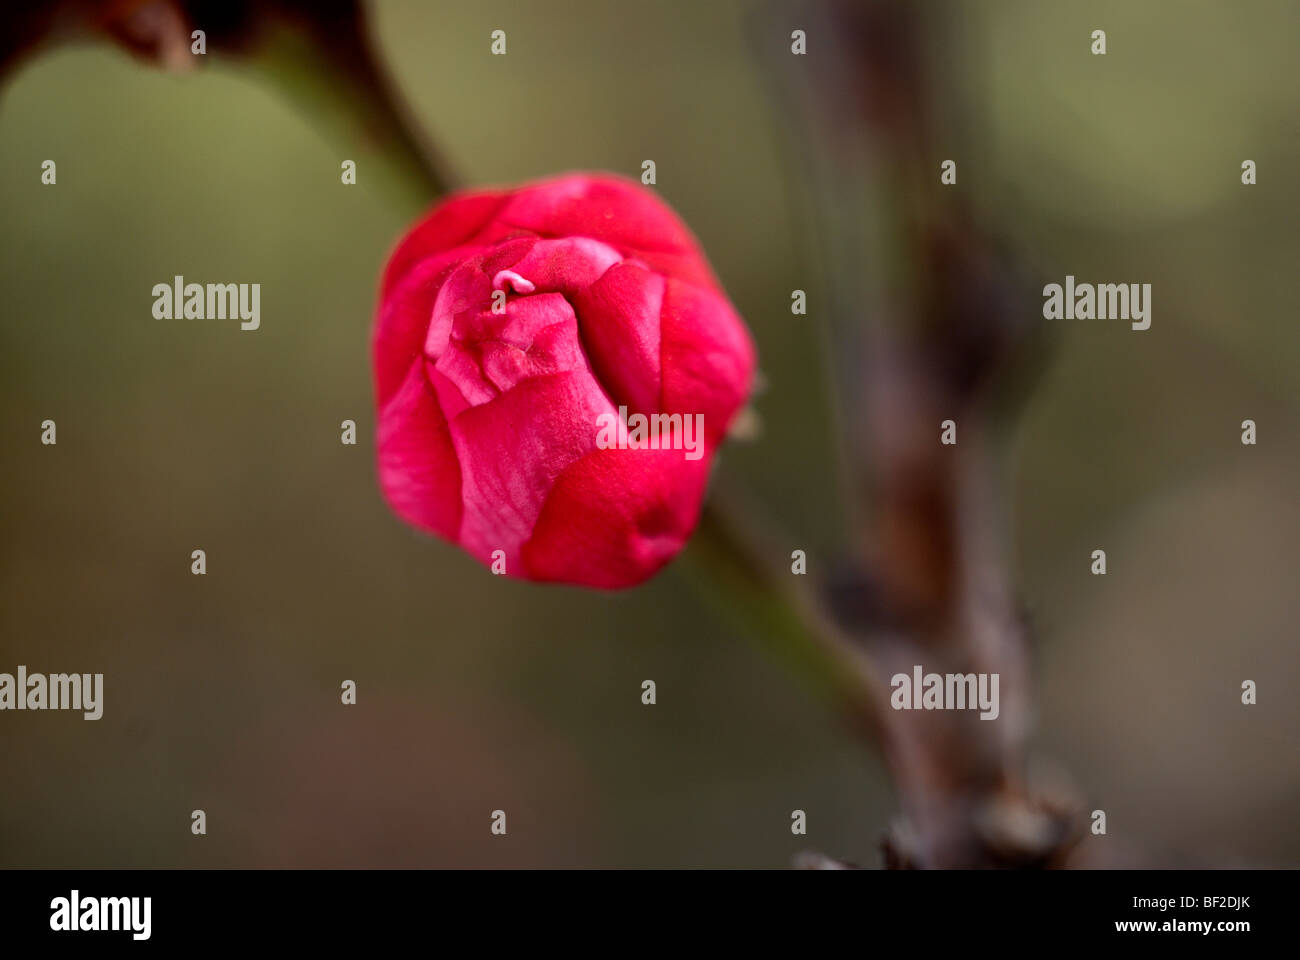 Peach Tree arbre ornemental, Bud, Bud, PEACH TREE, rose, branche, fond vert, oriental, macro, close-up, Close up, Photo Stock